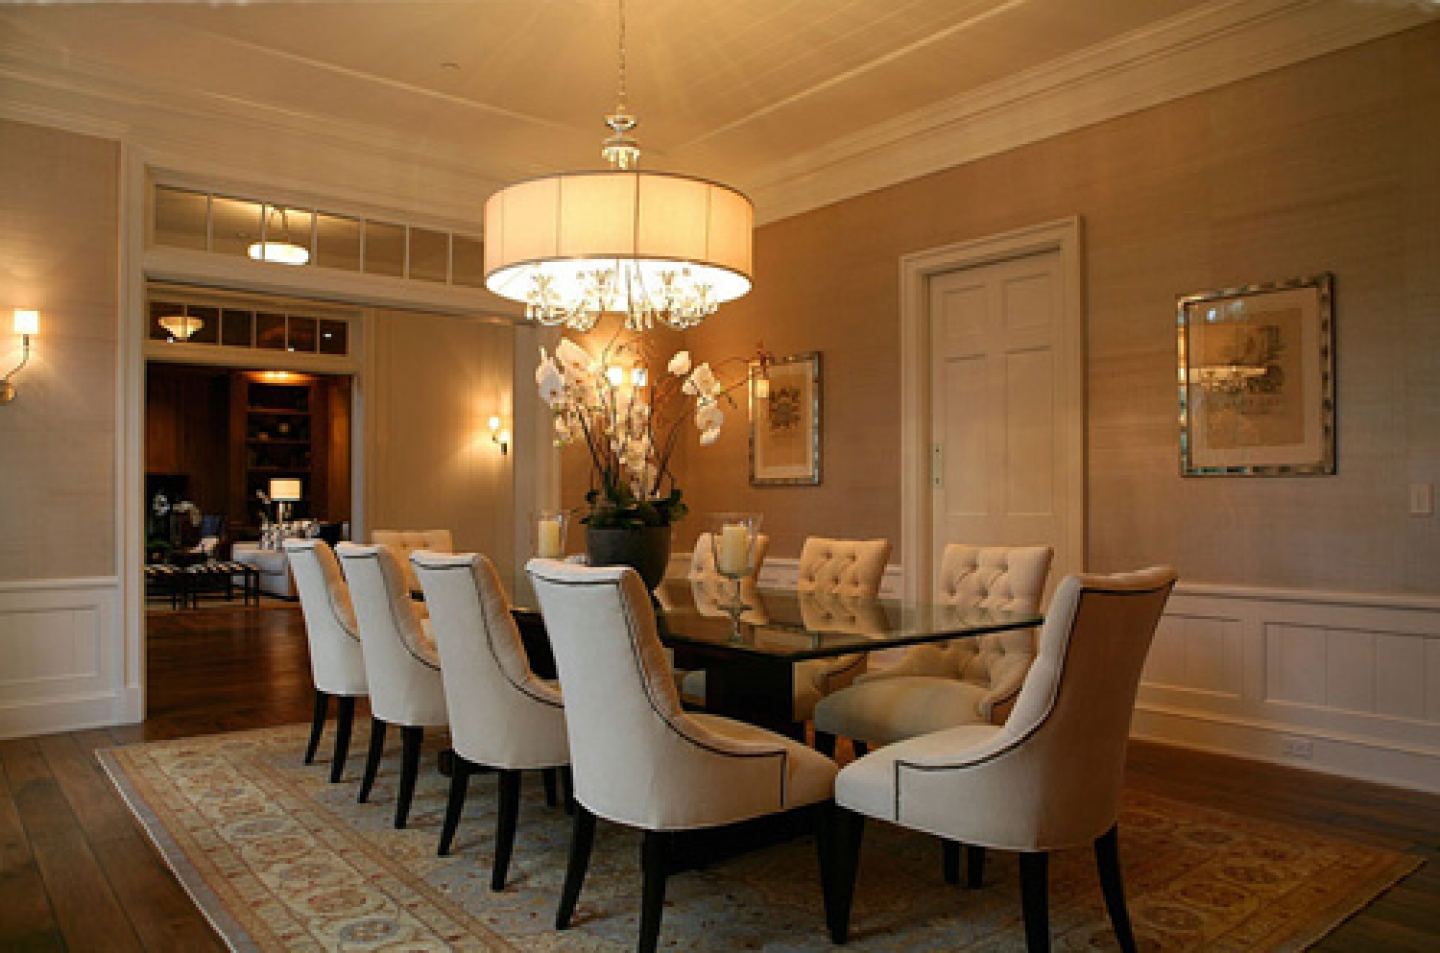 90 Stunning Dining Rooms With Chandeliers Pictures: How To Choose The Most Stunning Chandelier For Dining Room